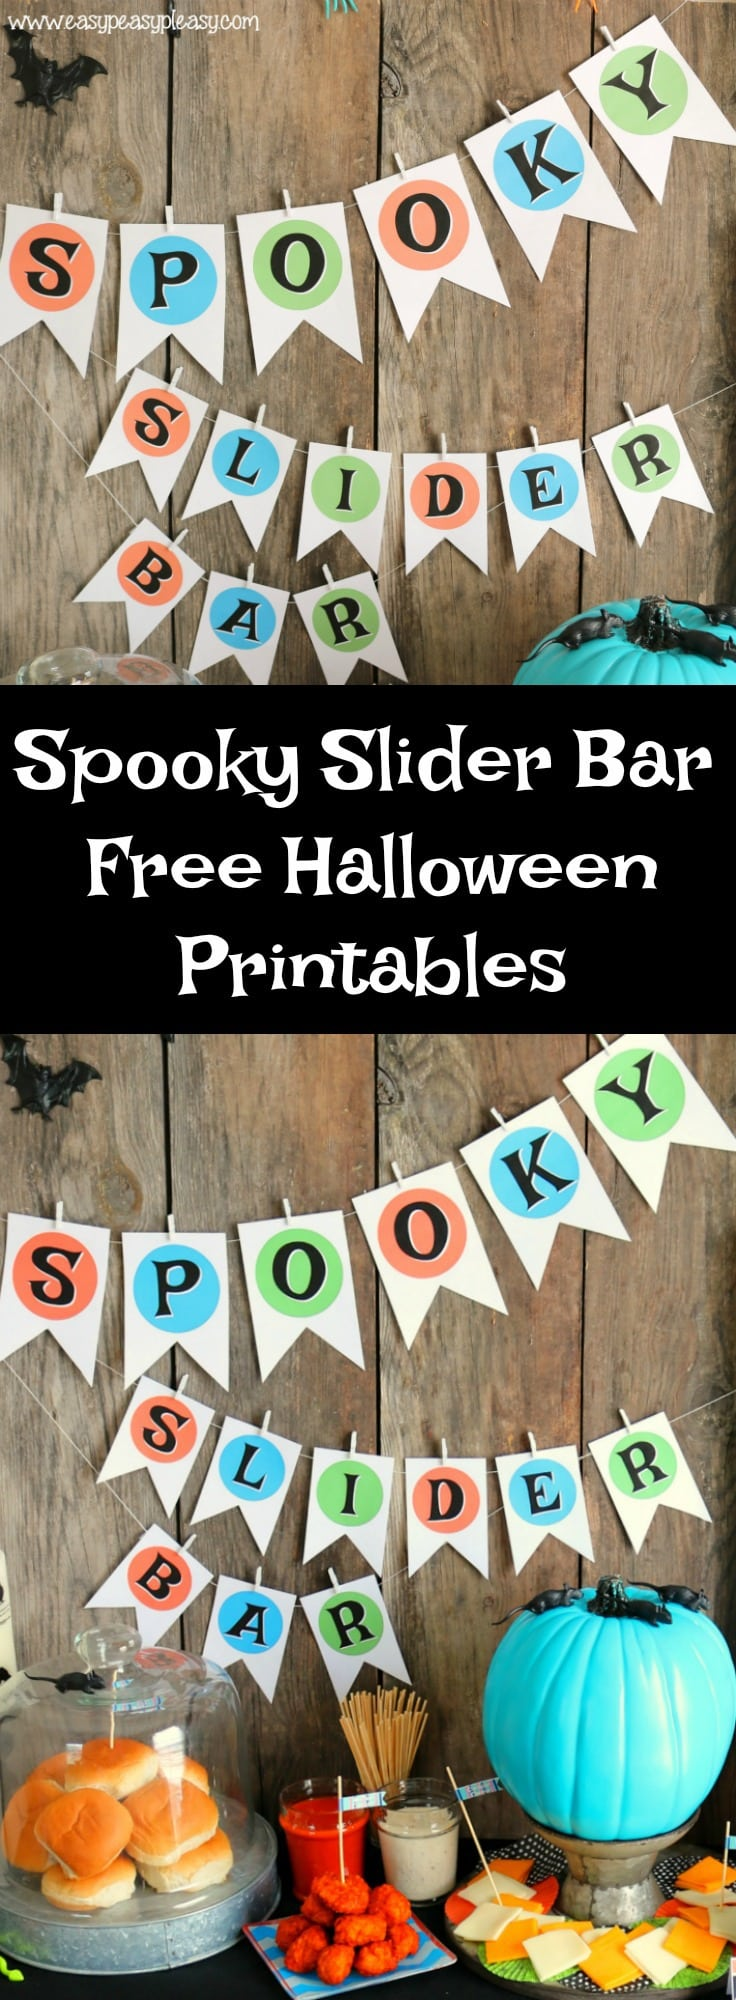 Free Spooky Slider Bar Halloween Printables.